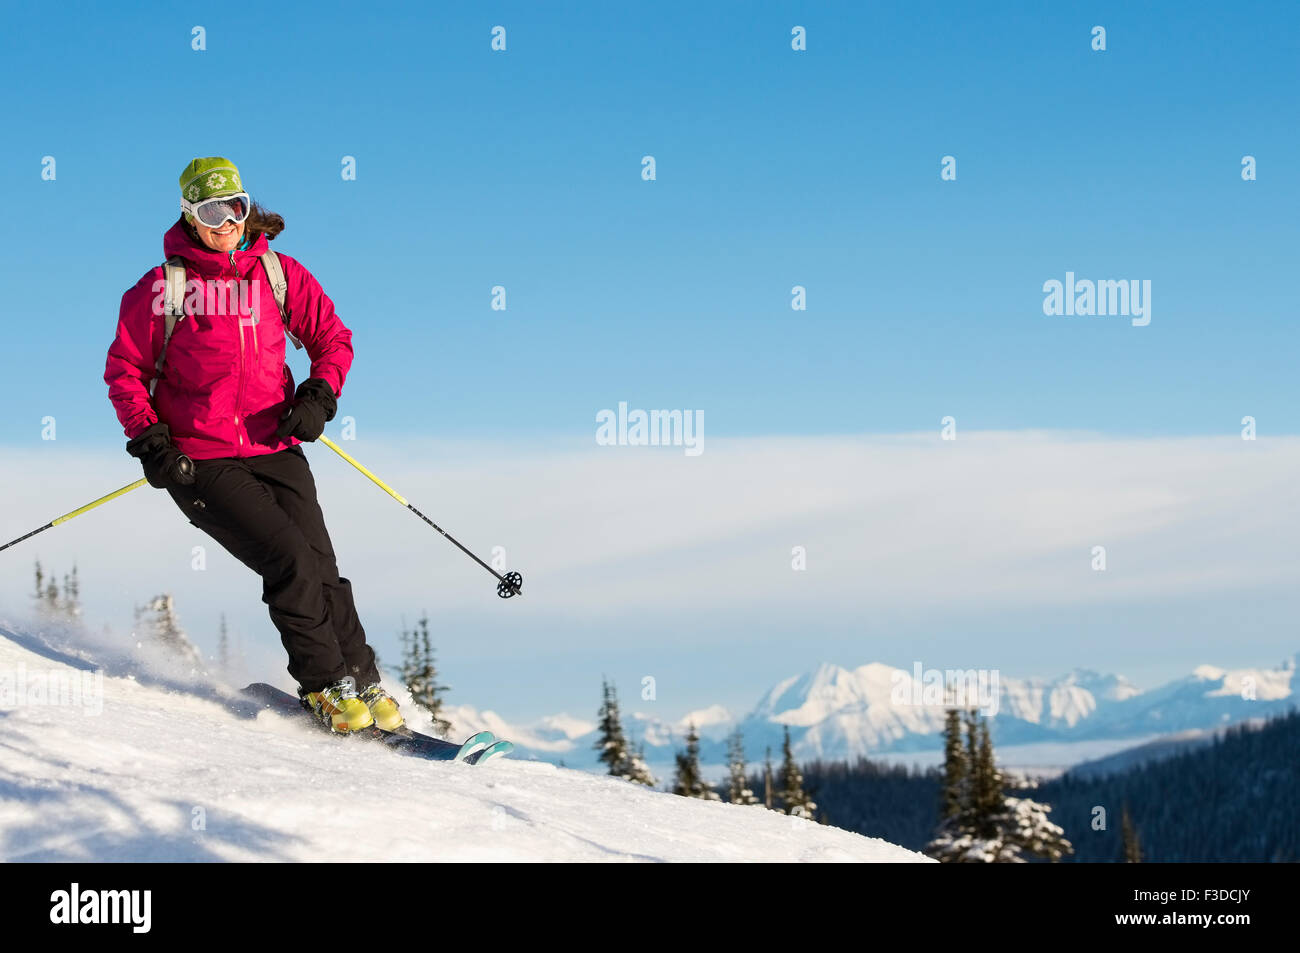 Mature woman on ski slope against sky - Stock Image